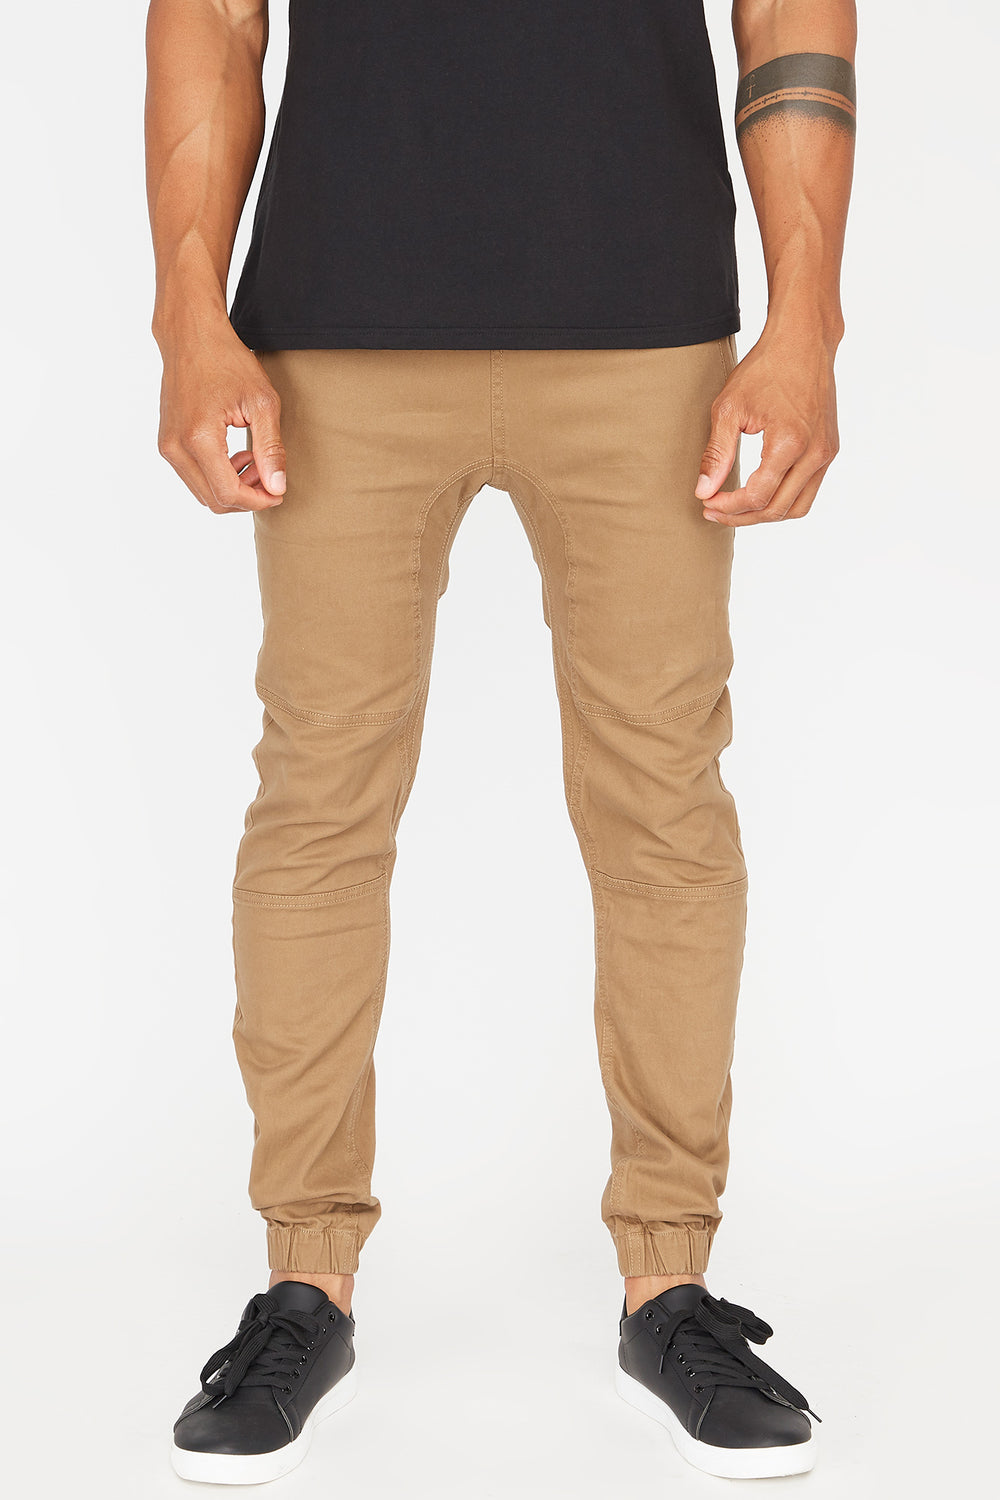 Zoo York Mens Solid Twill Zip Jogger Camel